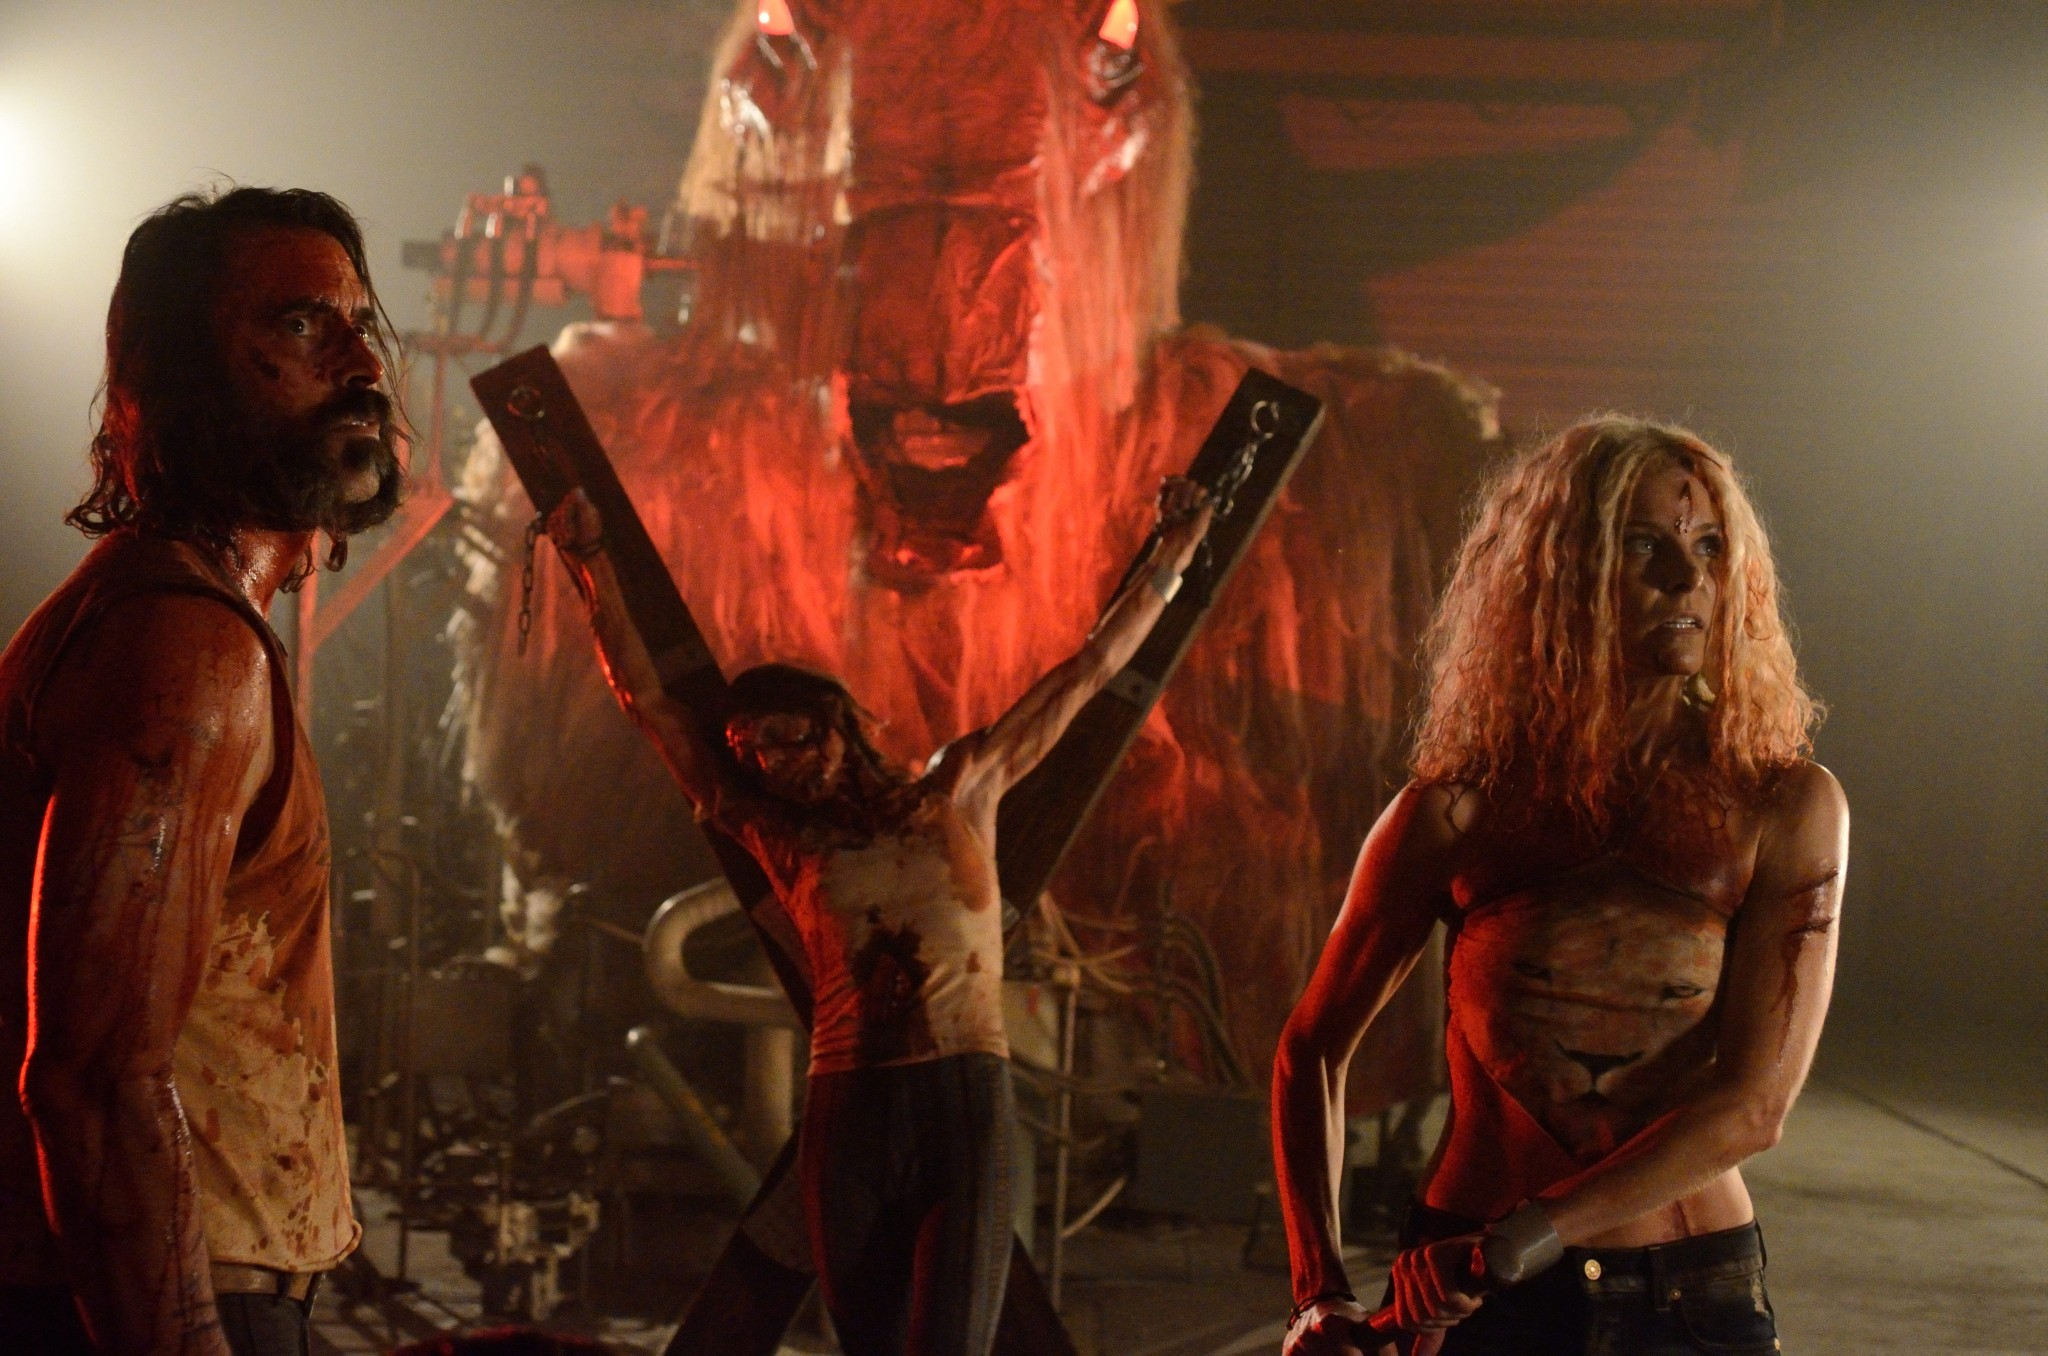 rob zombie's new film '31' is going to be out in time for halloween